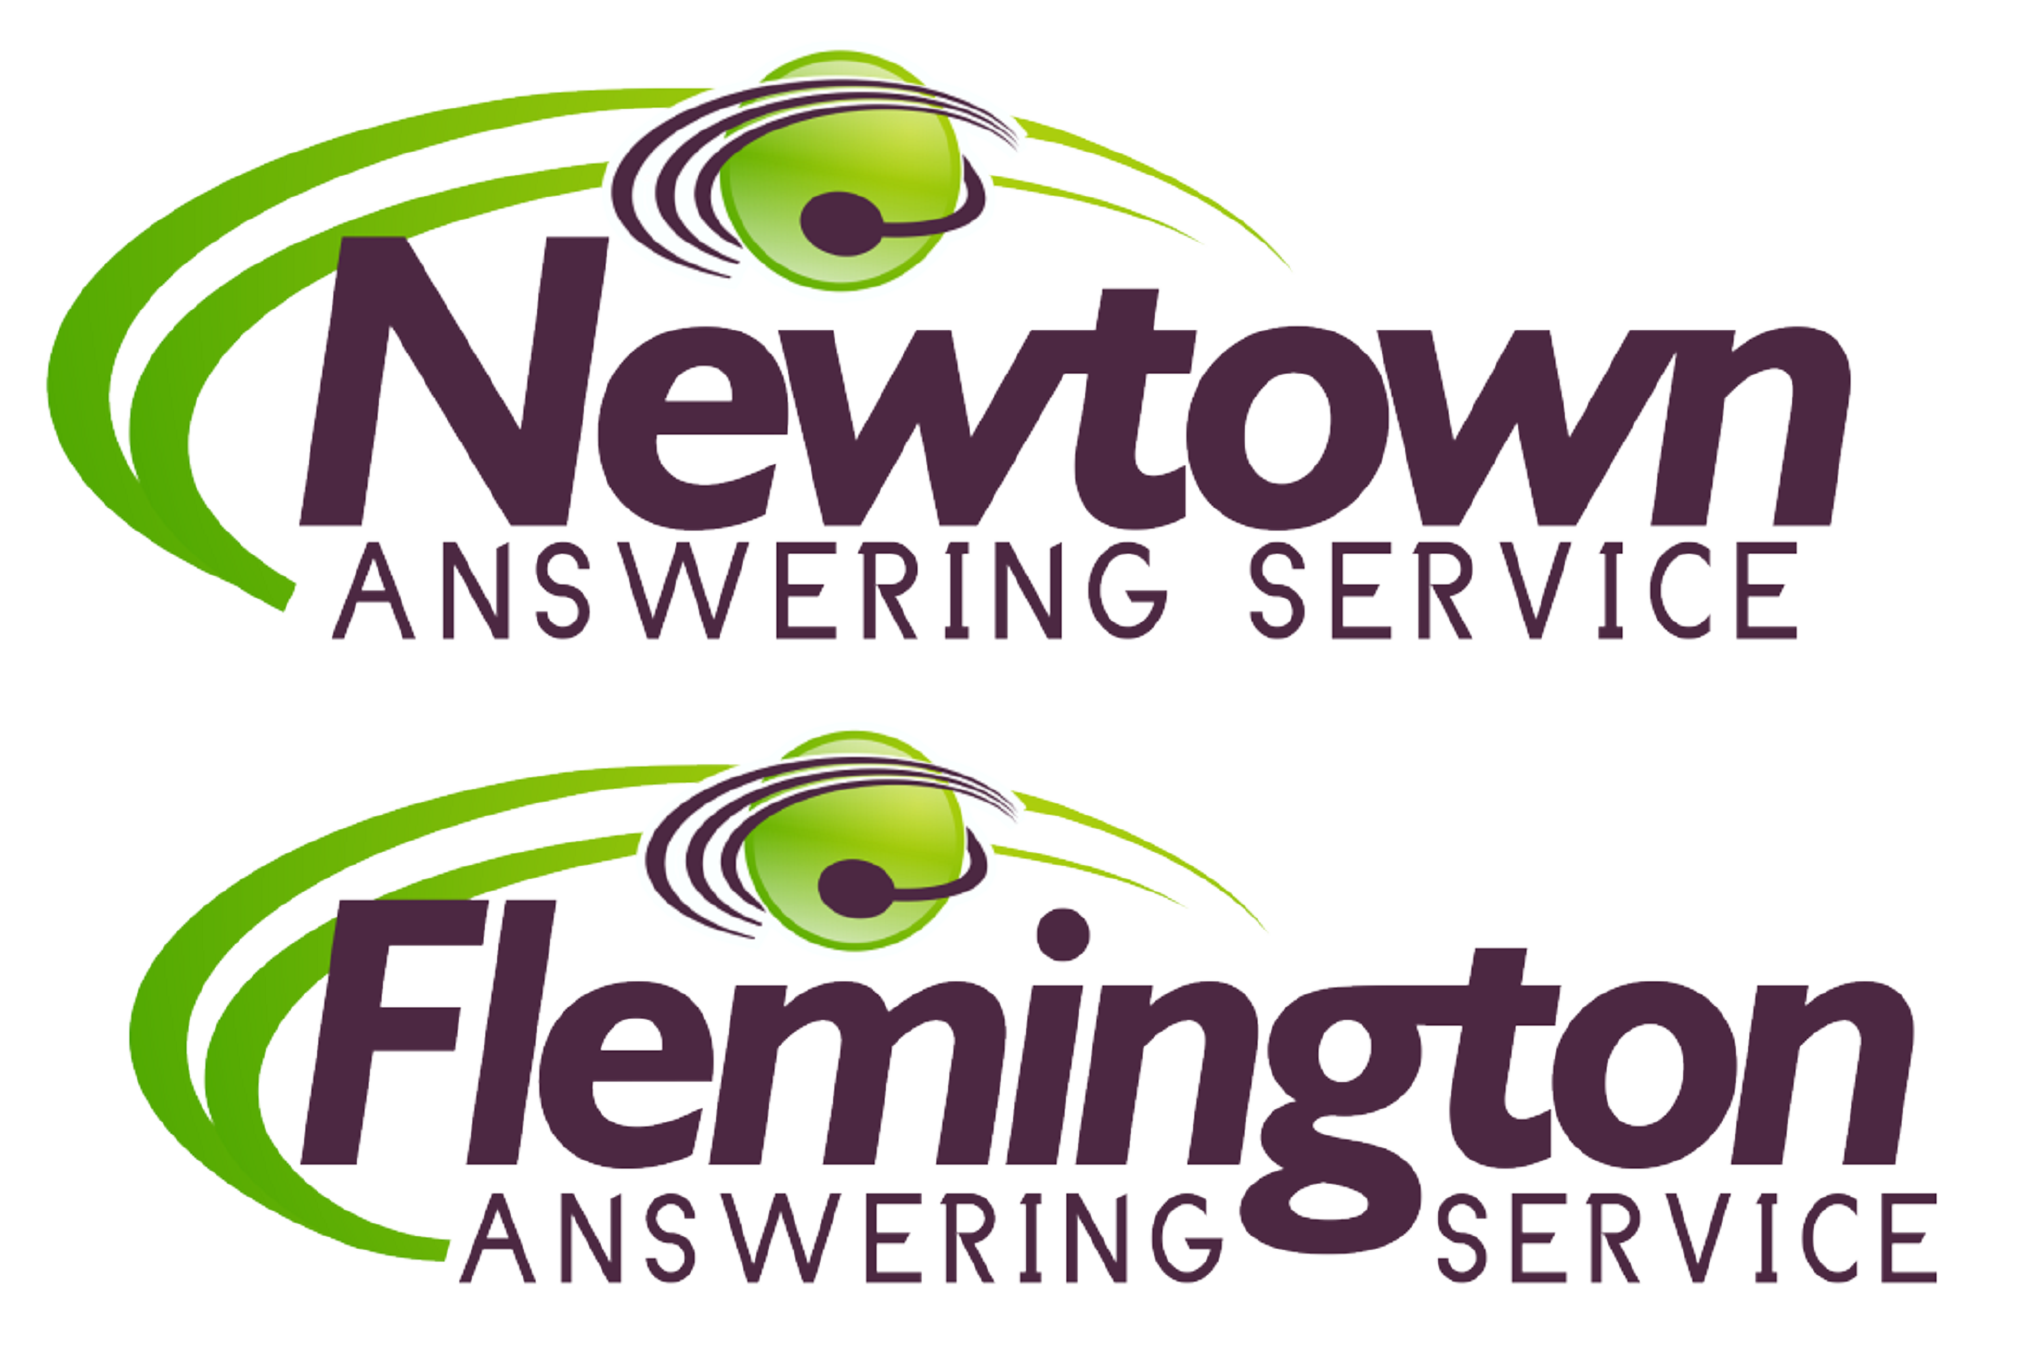 Newtown Answering Service